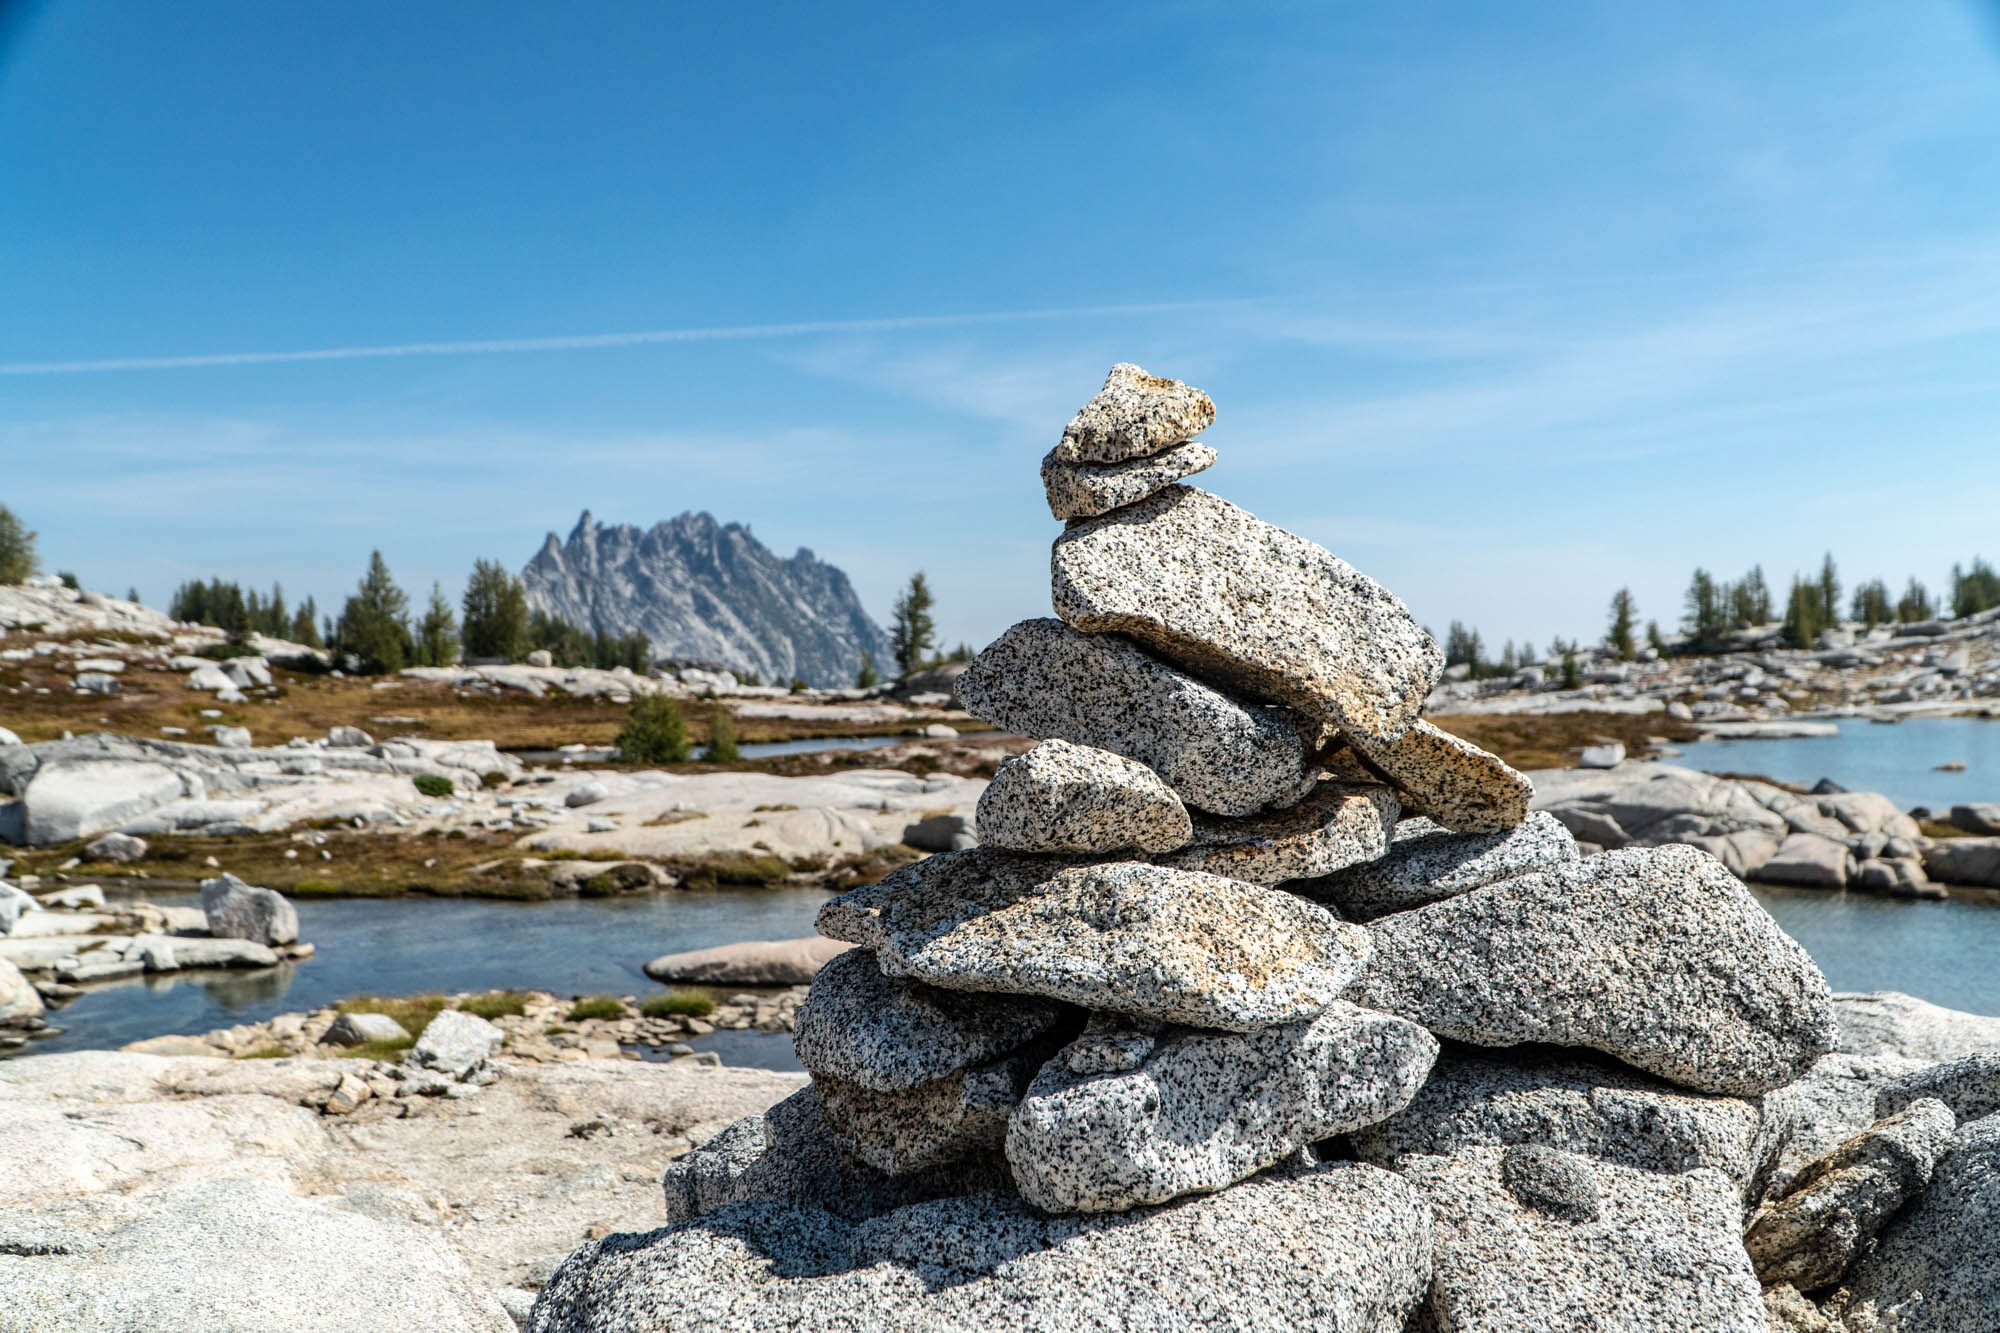 20180904-TheEnchantments-AlpineLakesWilderness-AmyRolloPhoto-03244.jpg